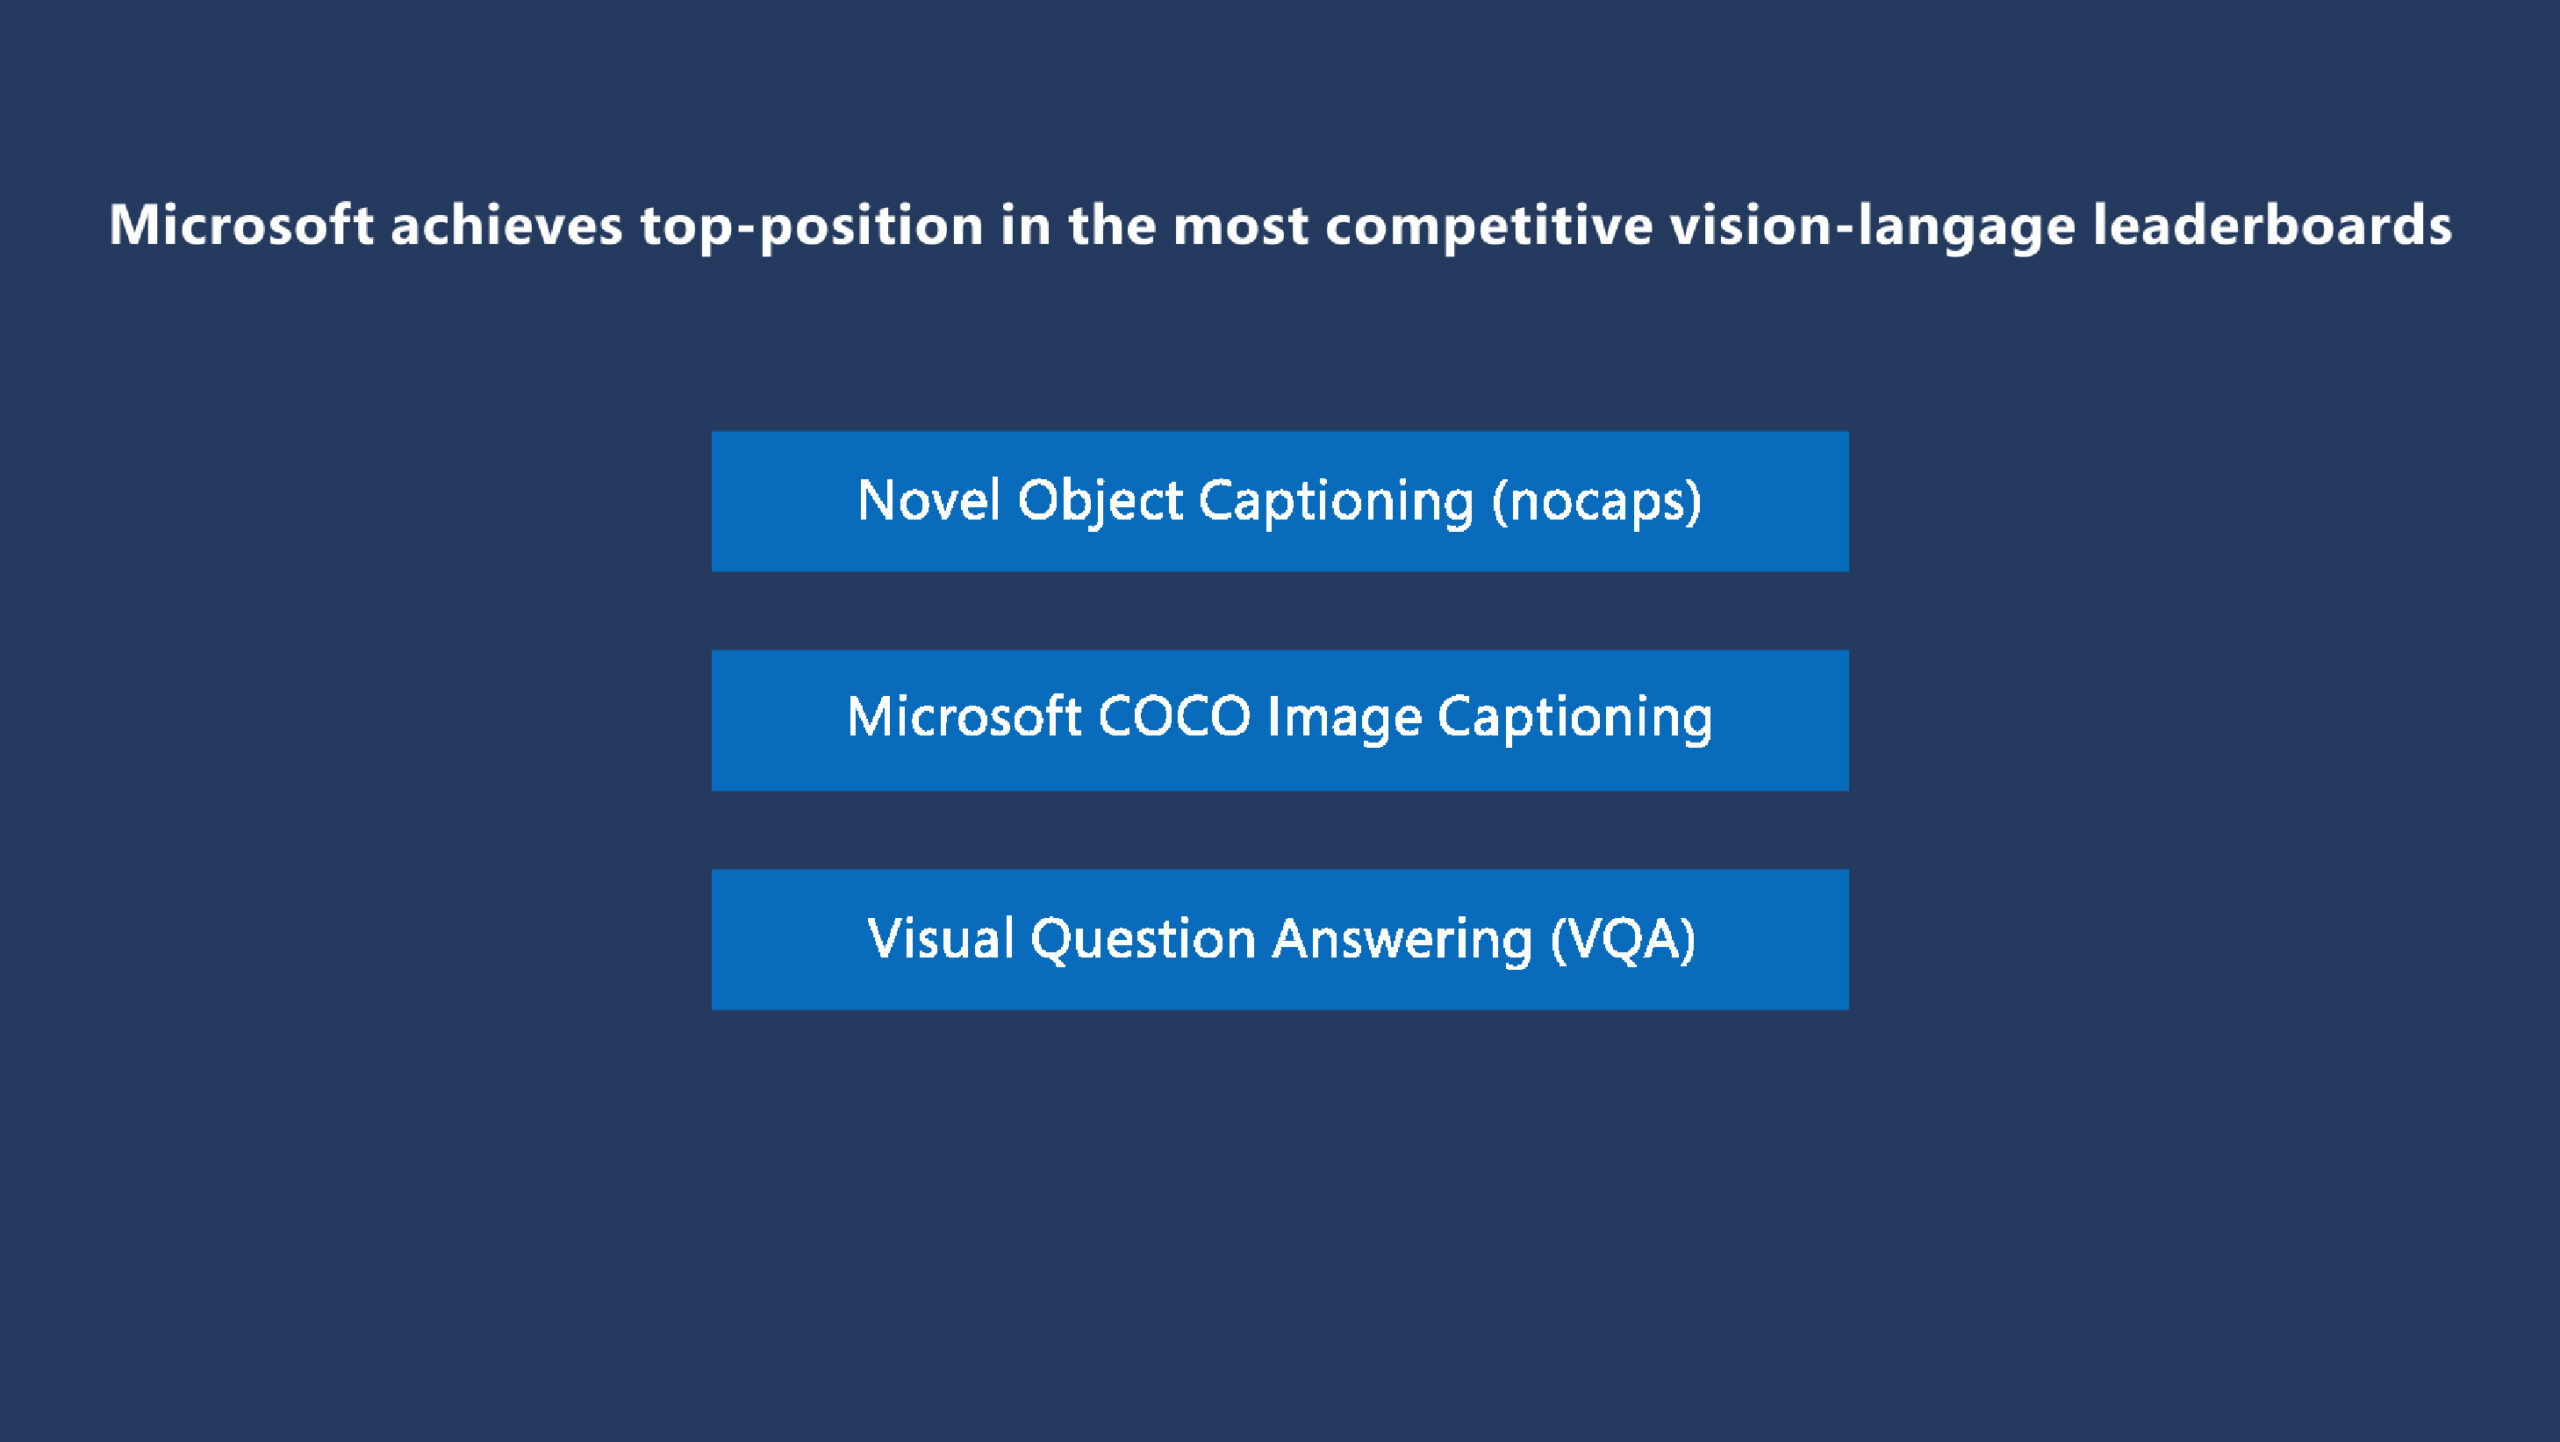 VinVL: Advancing the state of the art for vision-language models